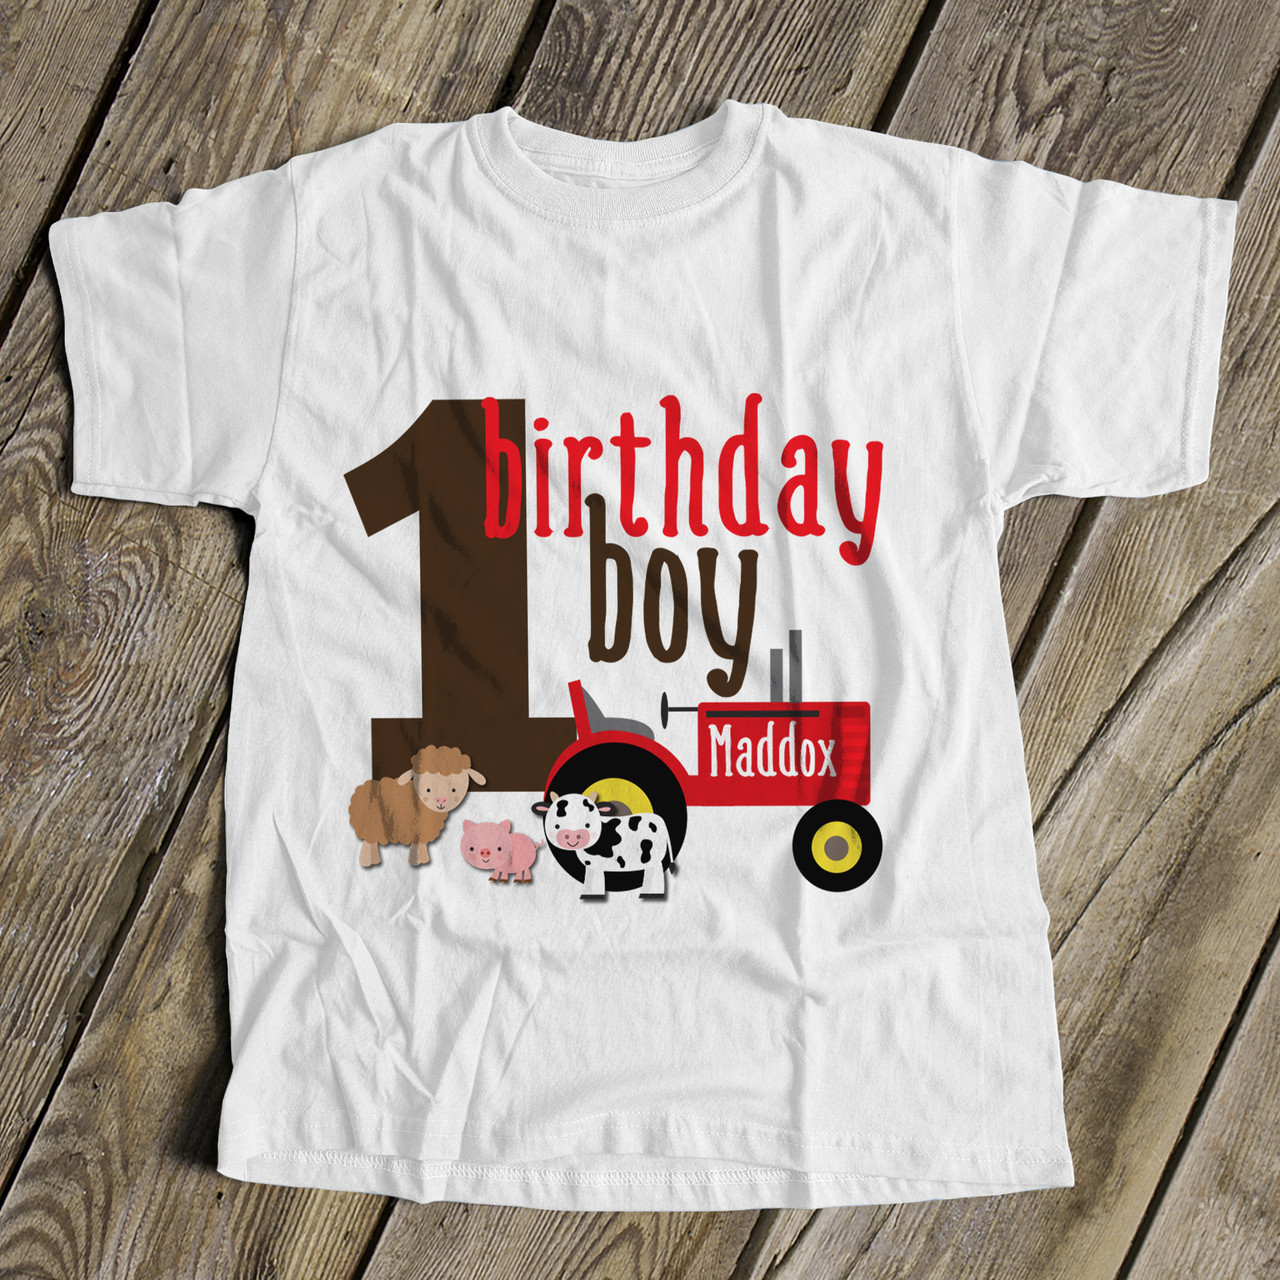 Birthday Boy 2 years Lion Kids Children Boys 2nd Birthday Printed T-Shirt Gift